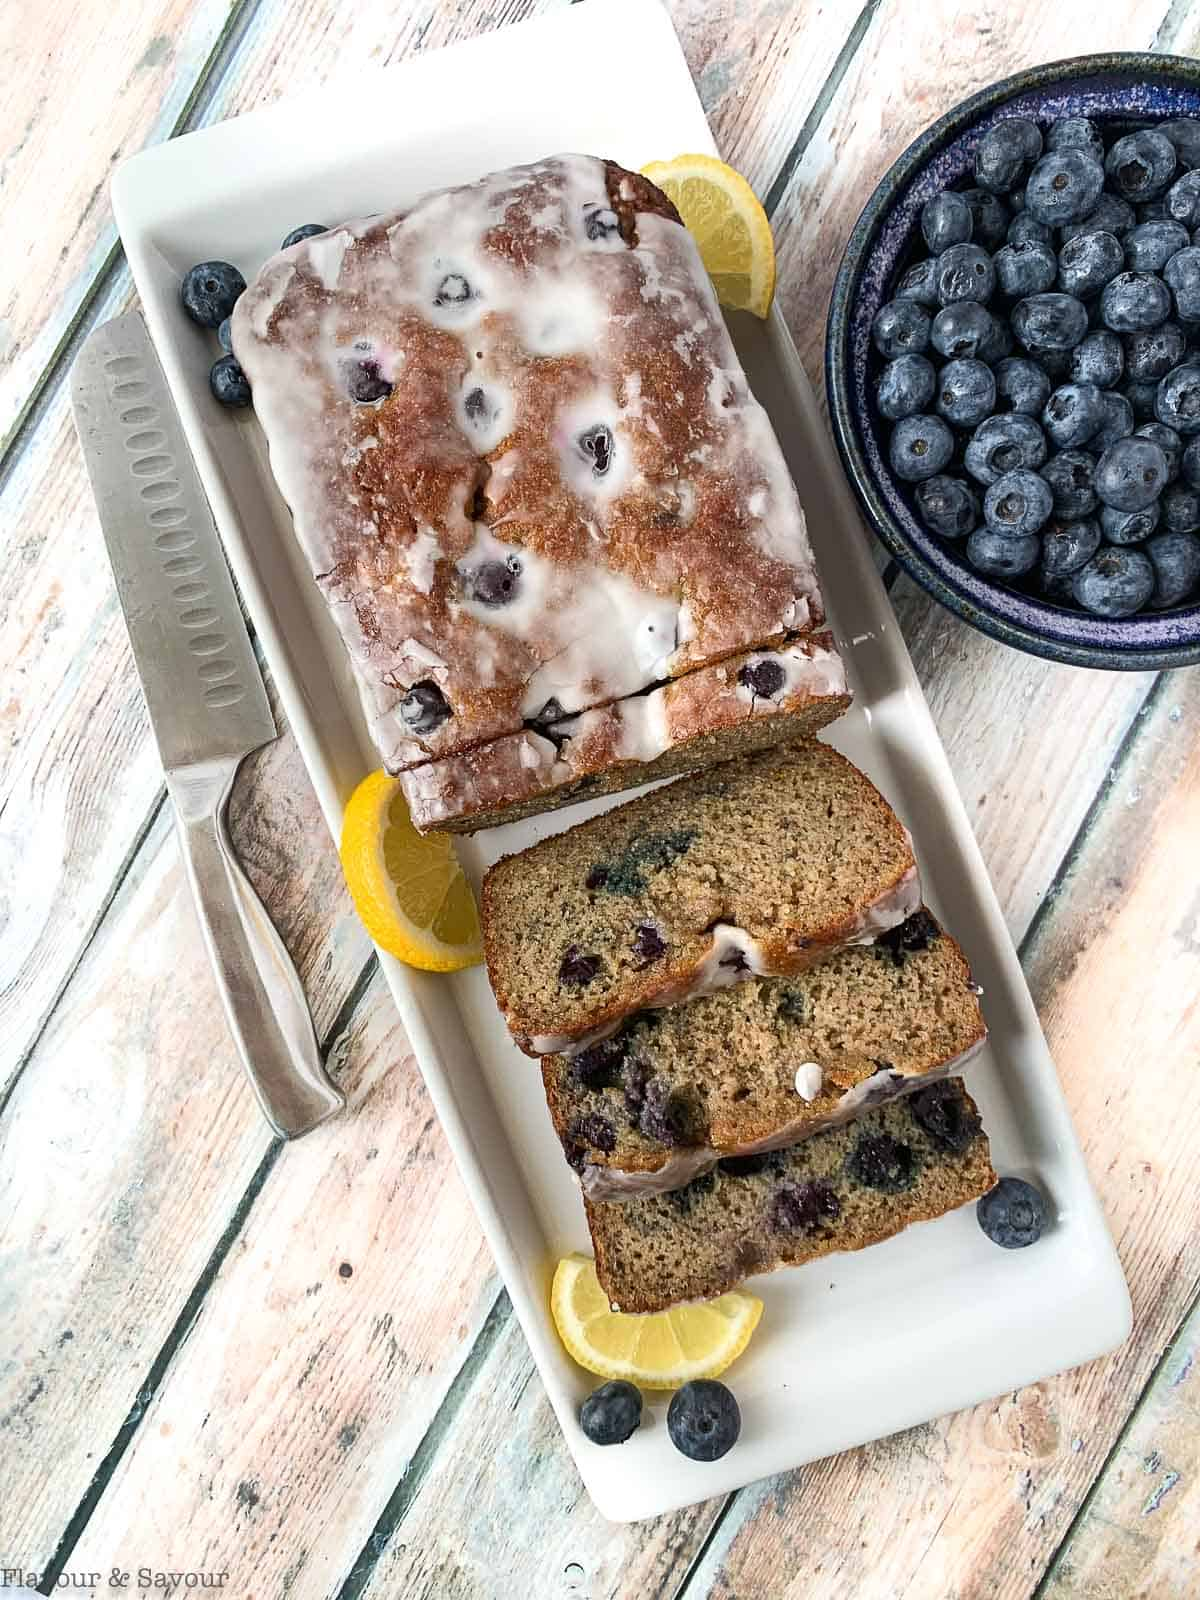 Grain Free Blueberry Banana Bread with a bowl of blueberries